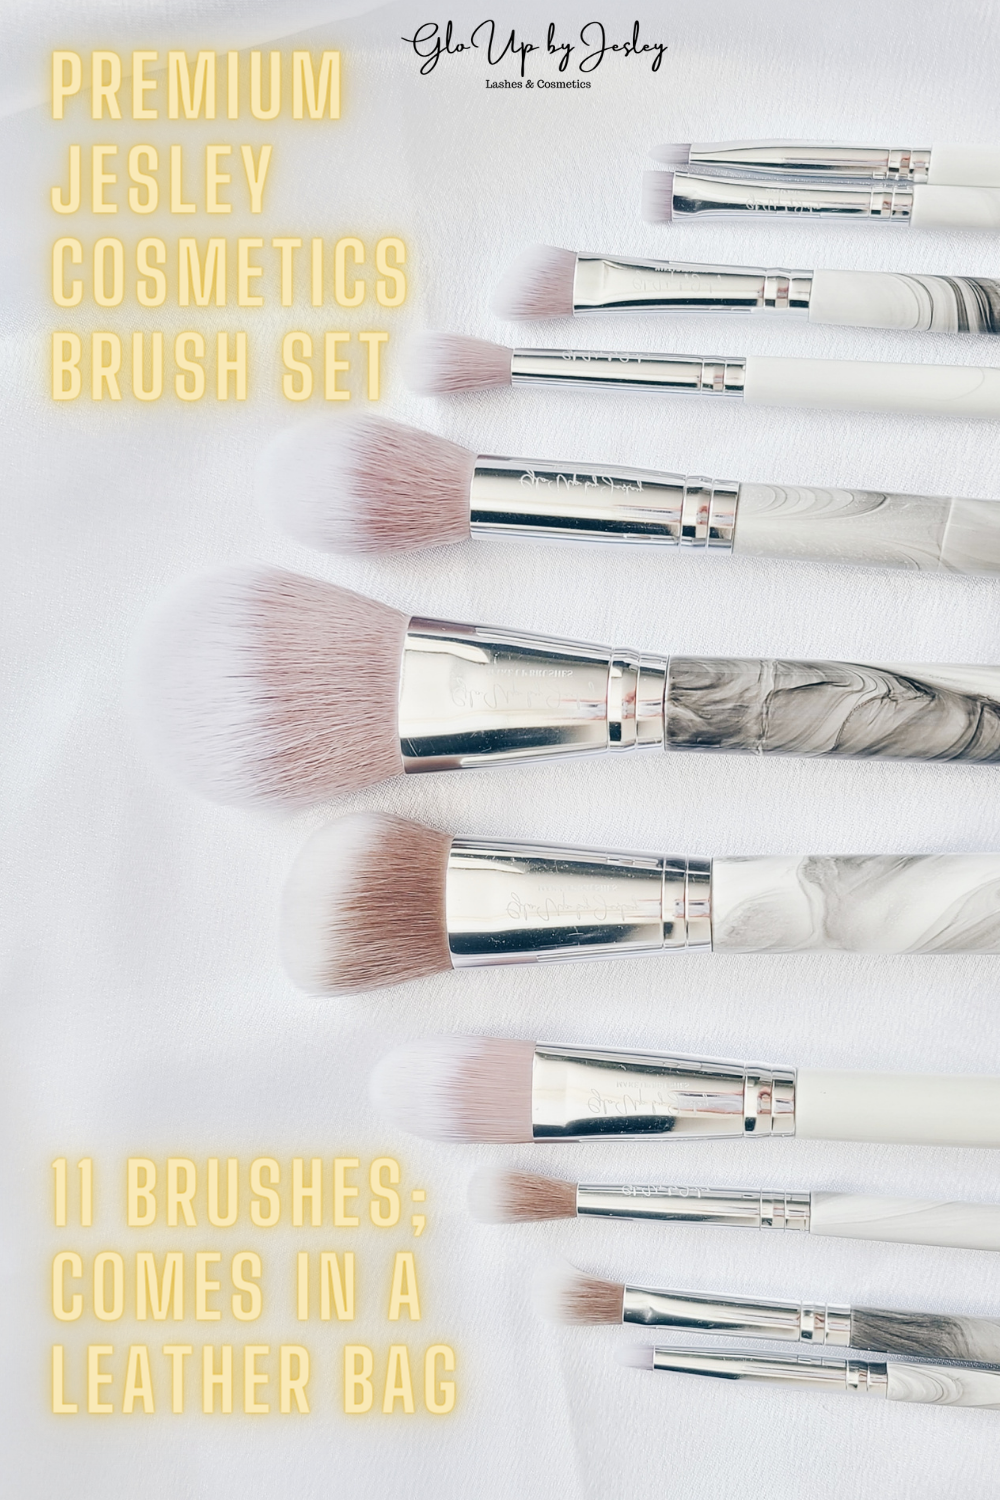 The Premium Jesley Makeup Brush Set comes with 11pcs of brushes & a vegan leather makeup brush bag. This is great for beginners and even for professional makeup artists. It has a luxurious look and feels with the marble handle designs and super soft bristles. 100% Vegan Add this to your collection by visiting our website! #makeup #makeupbrush #beauty #cosmetics